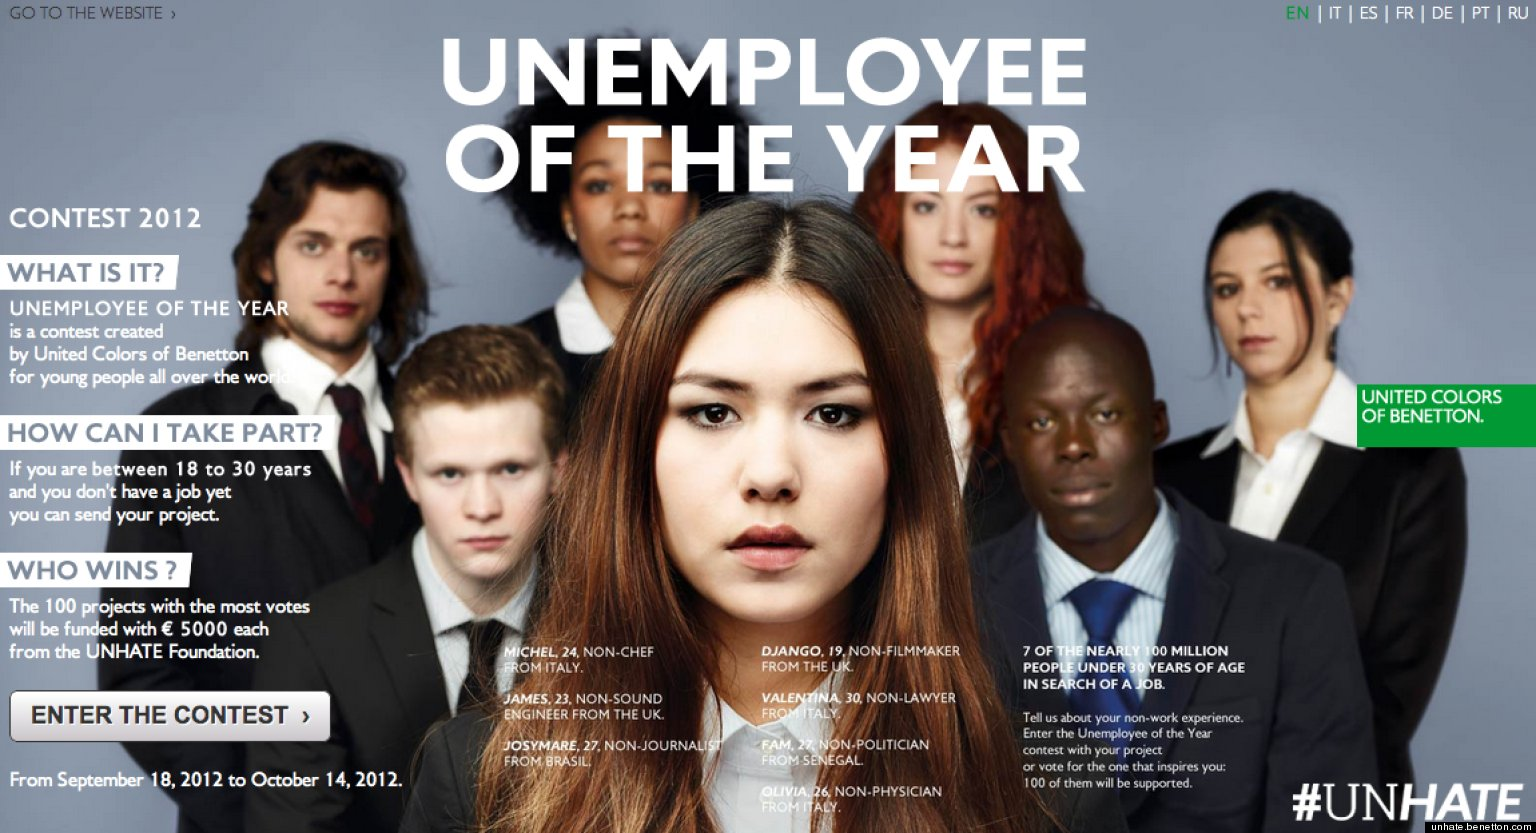 Sanskrit Of The Vedas Vs Modern Sanskrit: Benetton's 'UNHATE' Ad Campaign To Target Unemployed Youth